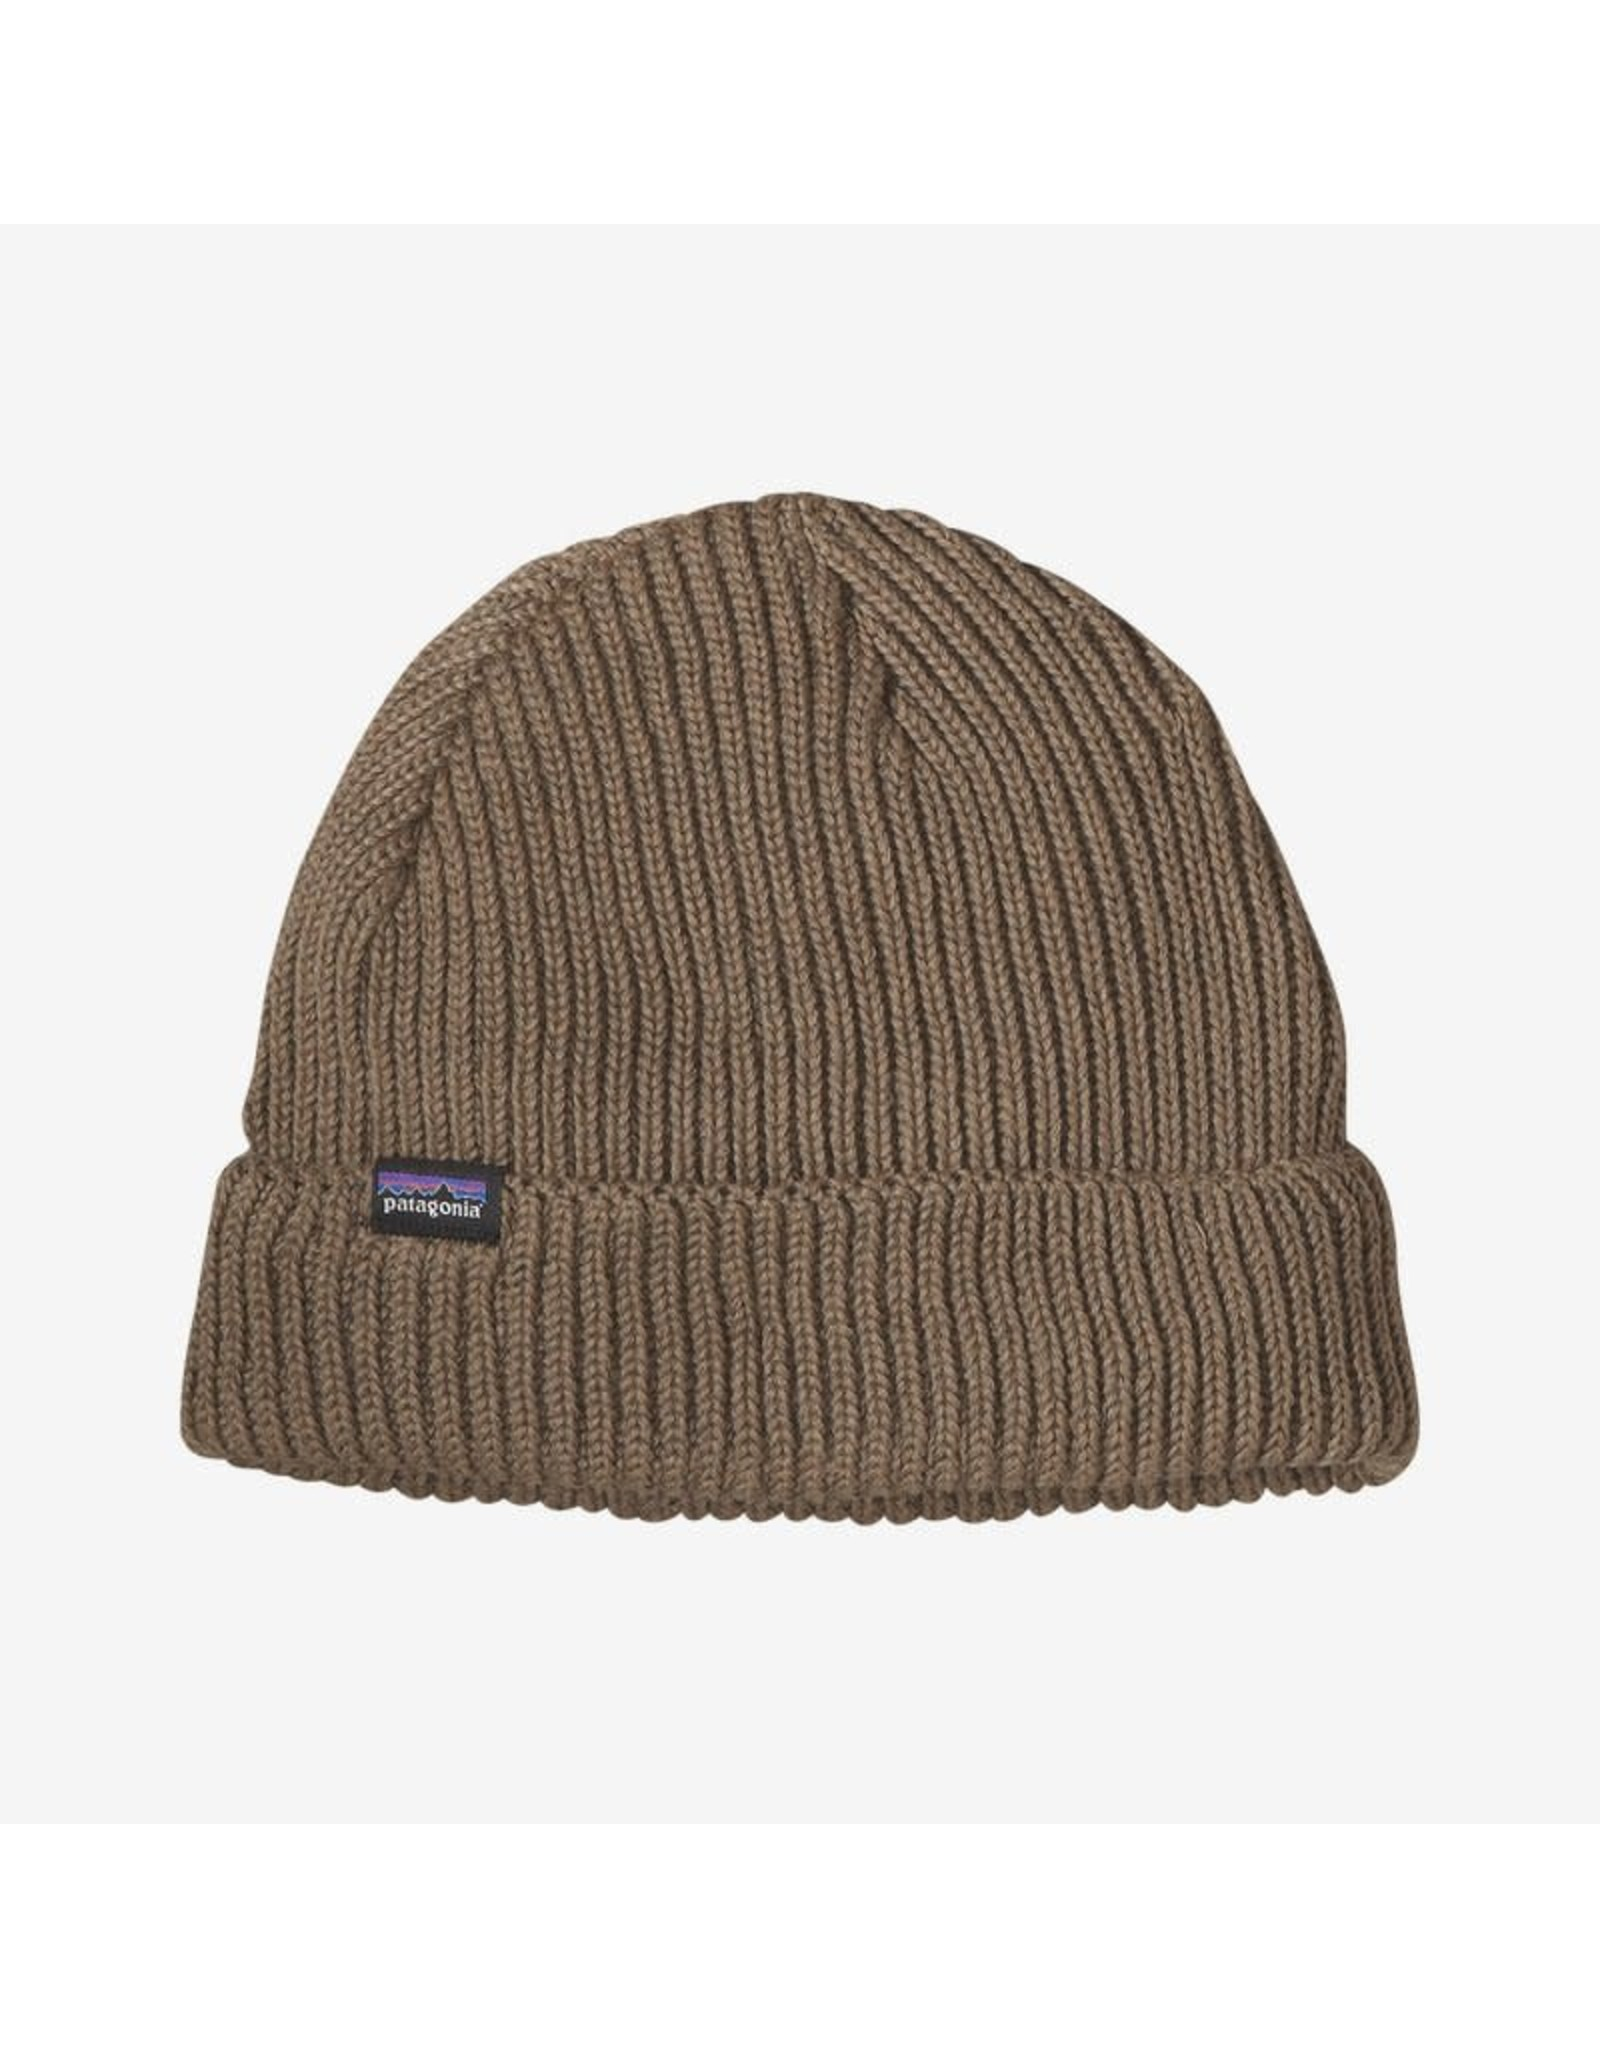 Patagonia Patagonia - Tuque homme fishermans rolled ash tan